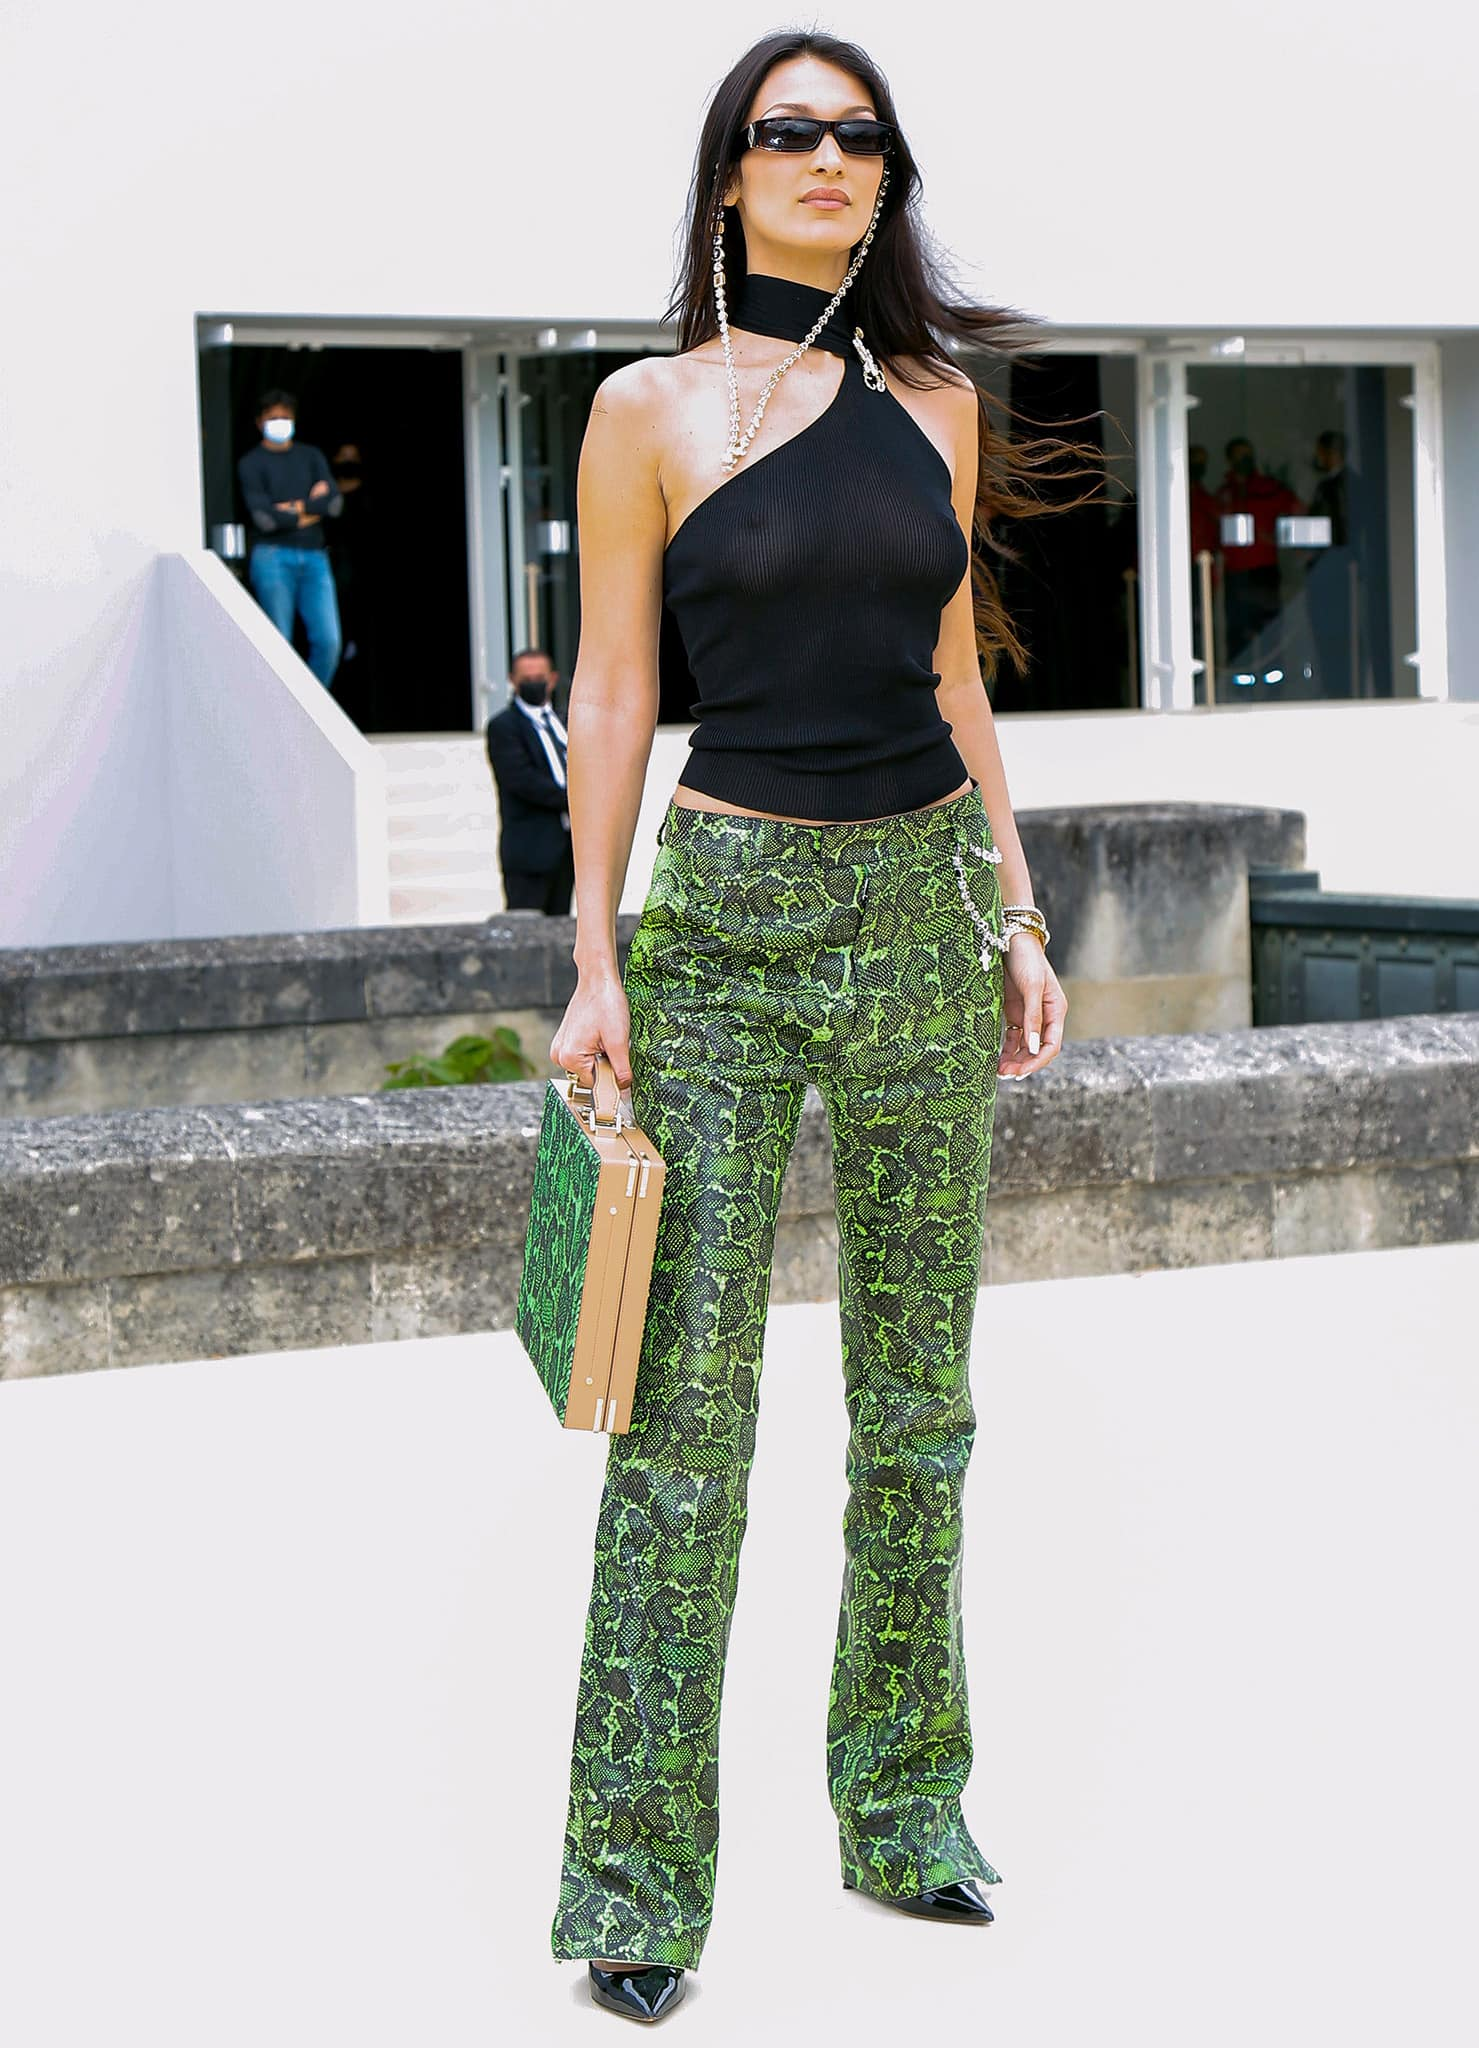 Bella Hadid is braless underneath her Gucci x Tom Ford sheer top paired with Dior green snakeskin trousers